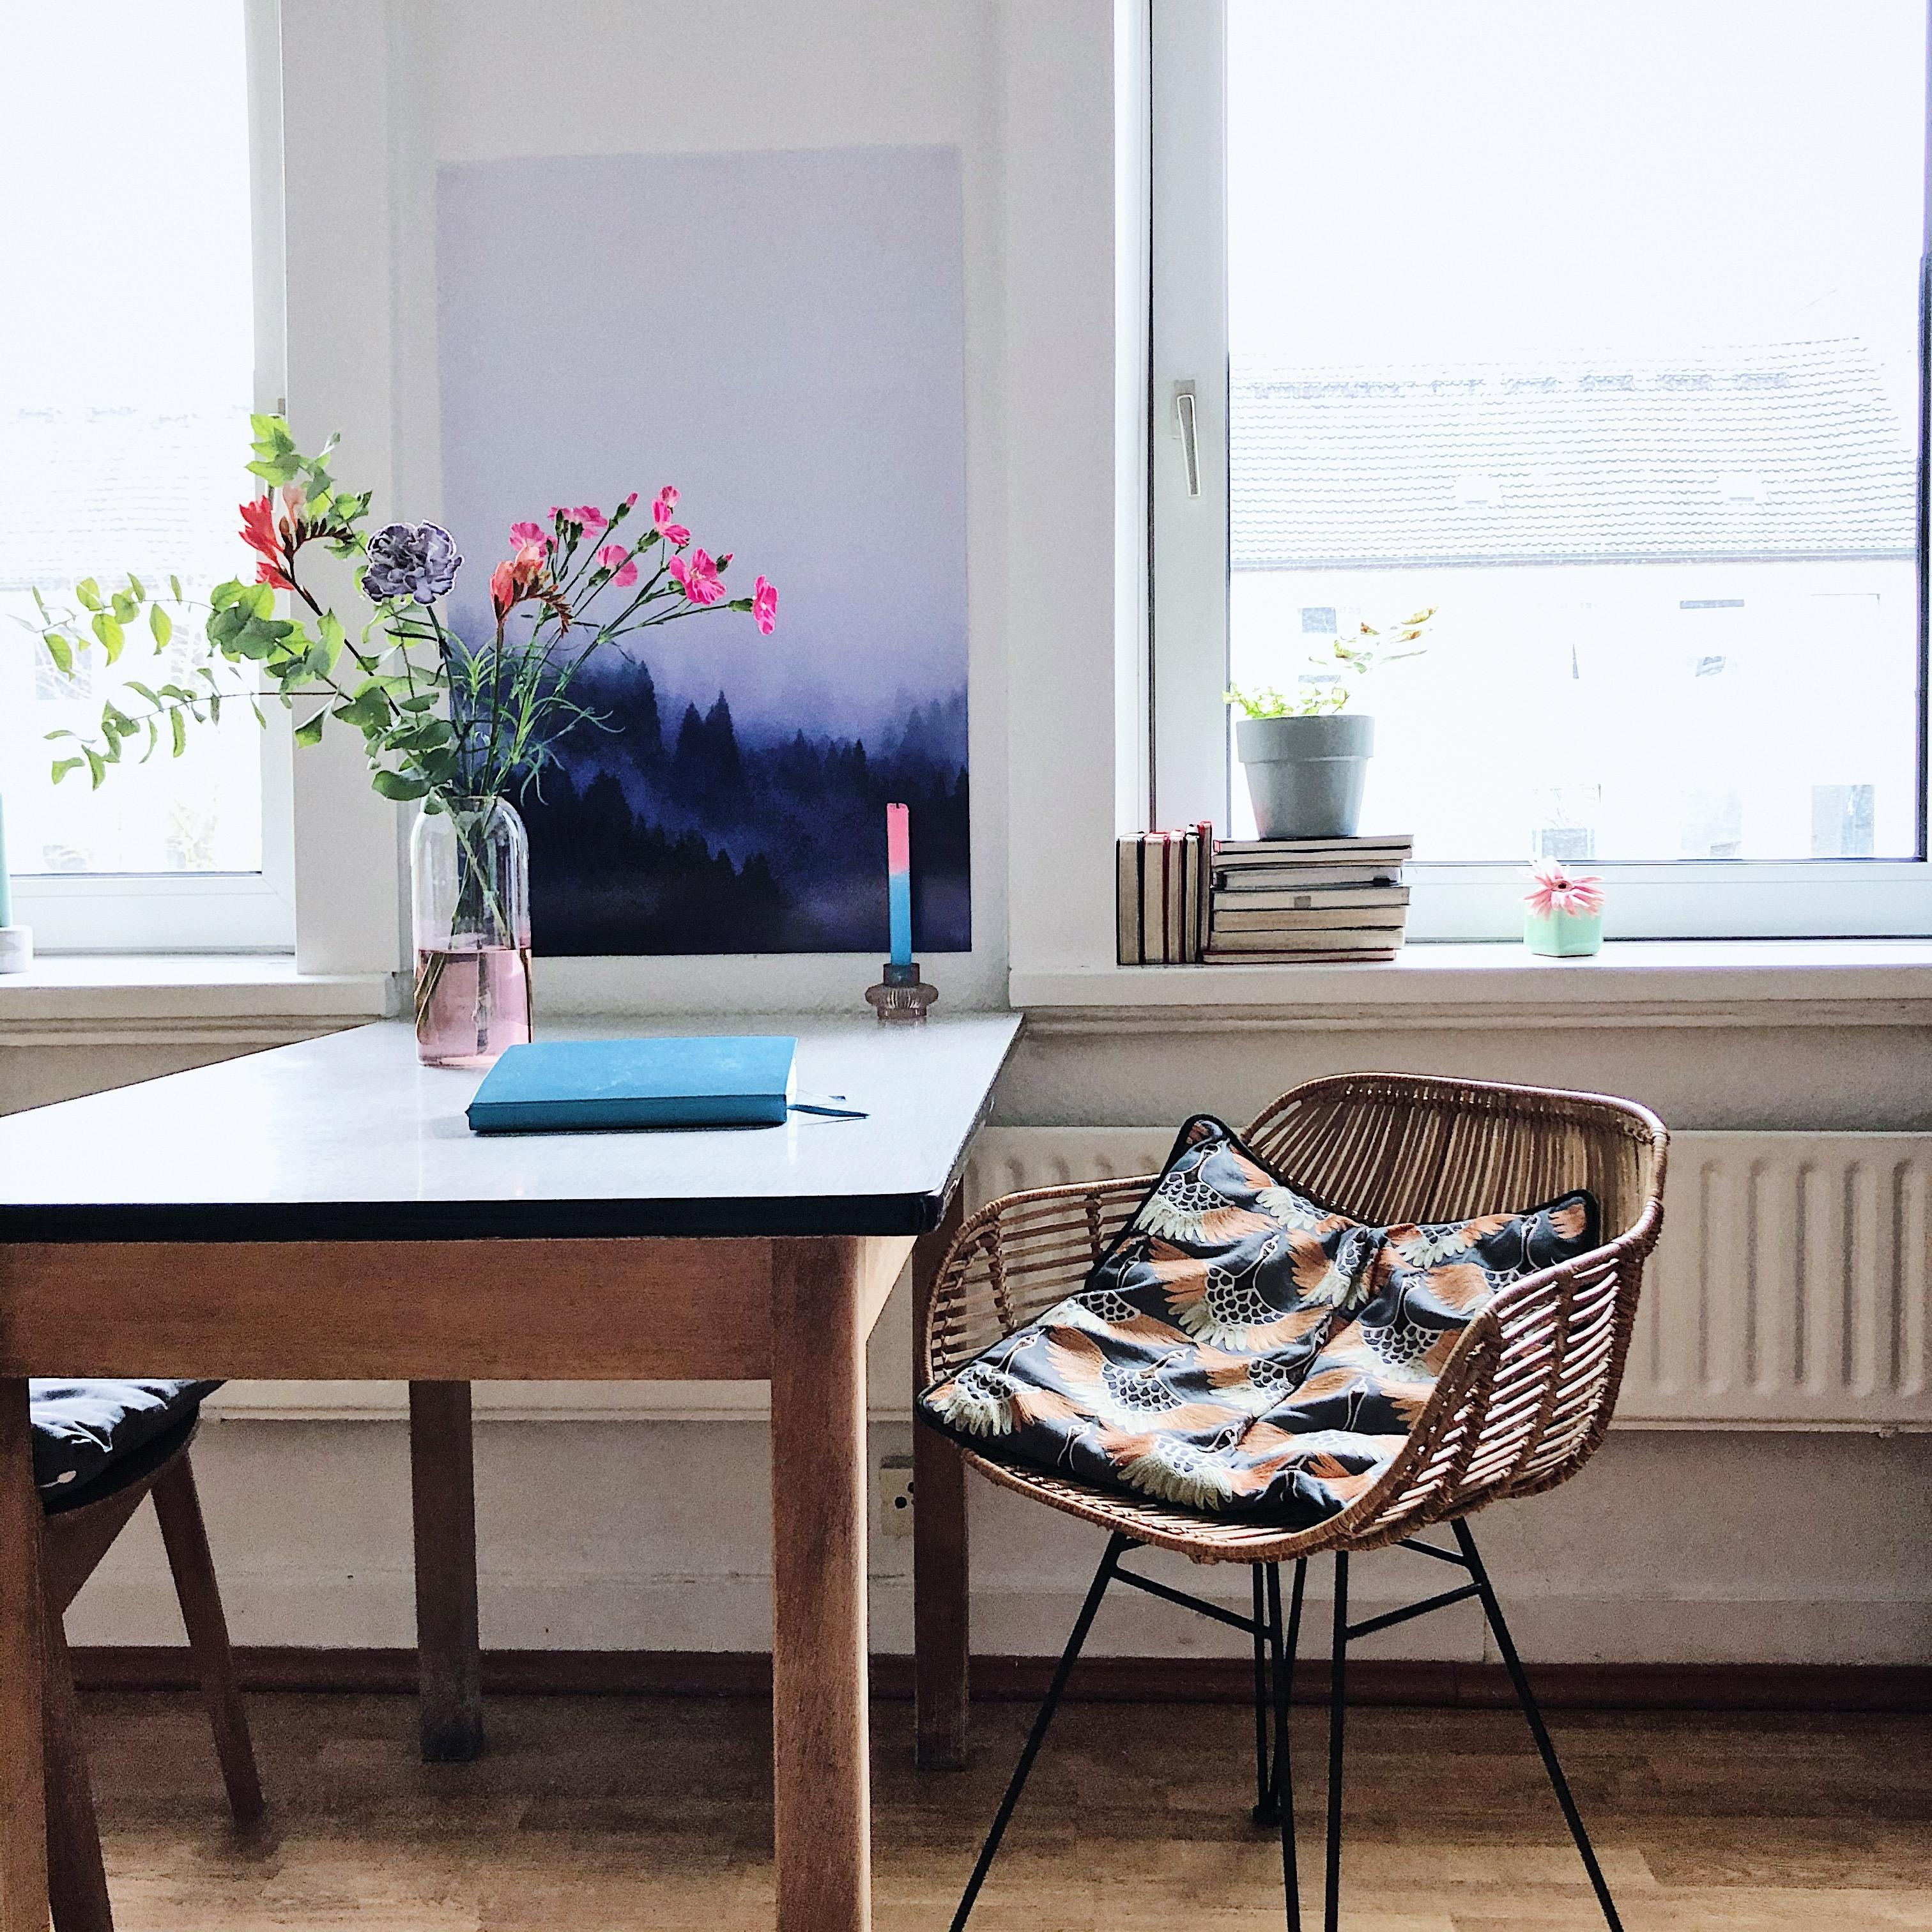 Let the homeoffice continue homeoffice schreibtisch rattanstuhl blumen  57b54ed3 a4db 45c6 b63d b1c1a24e27a5